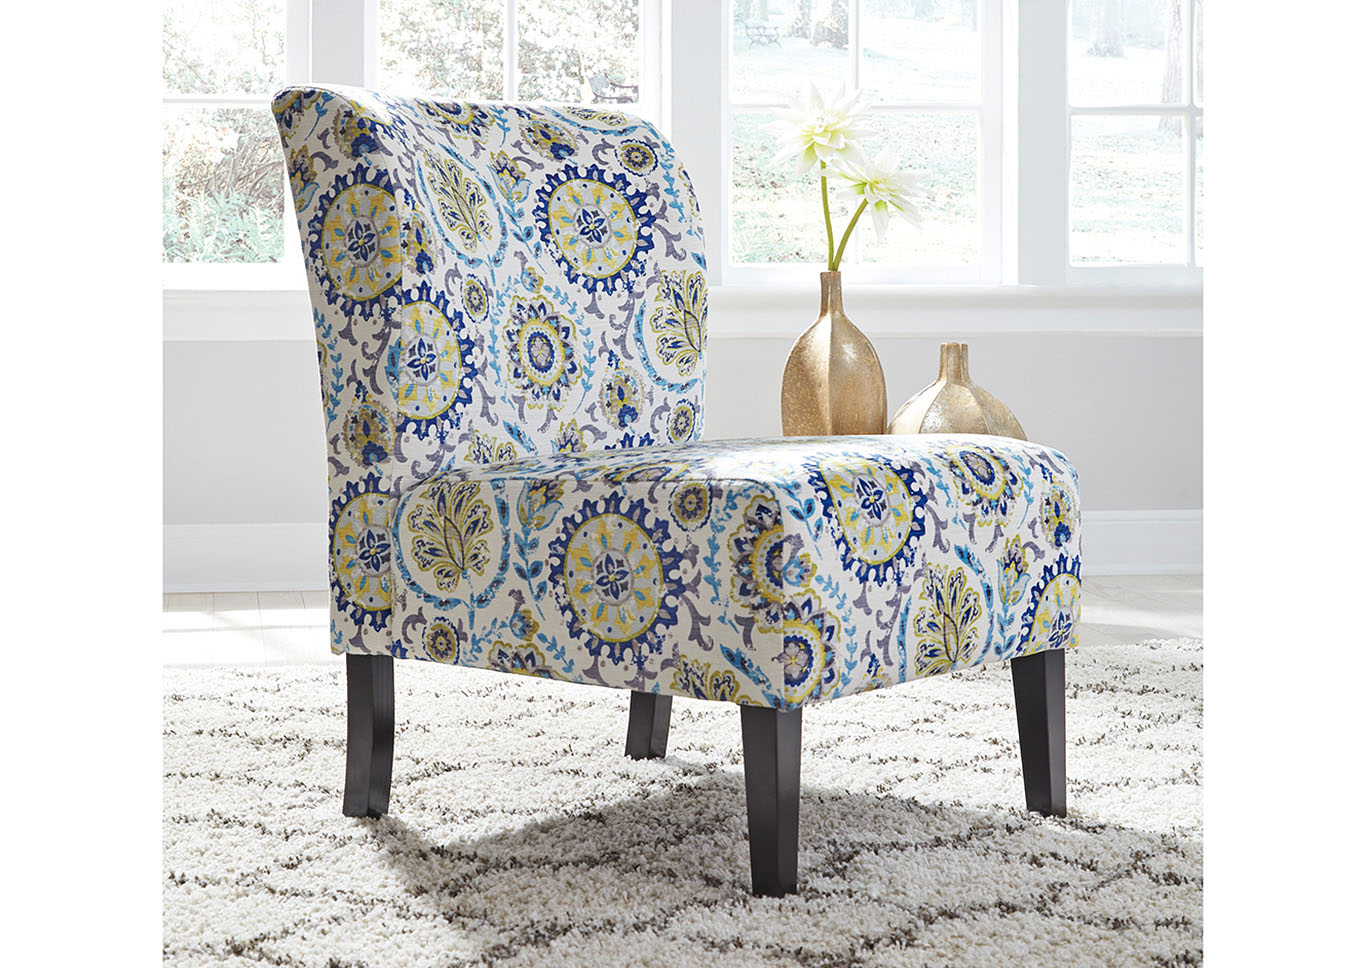 Blue Patterned Chair Furniture Exchange Triptis Blue Patterned Accent Chair